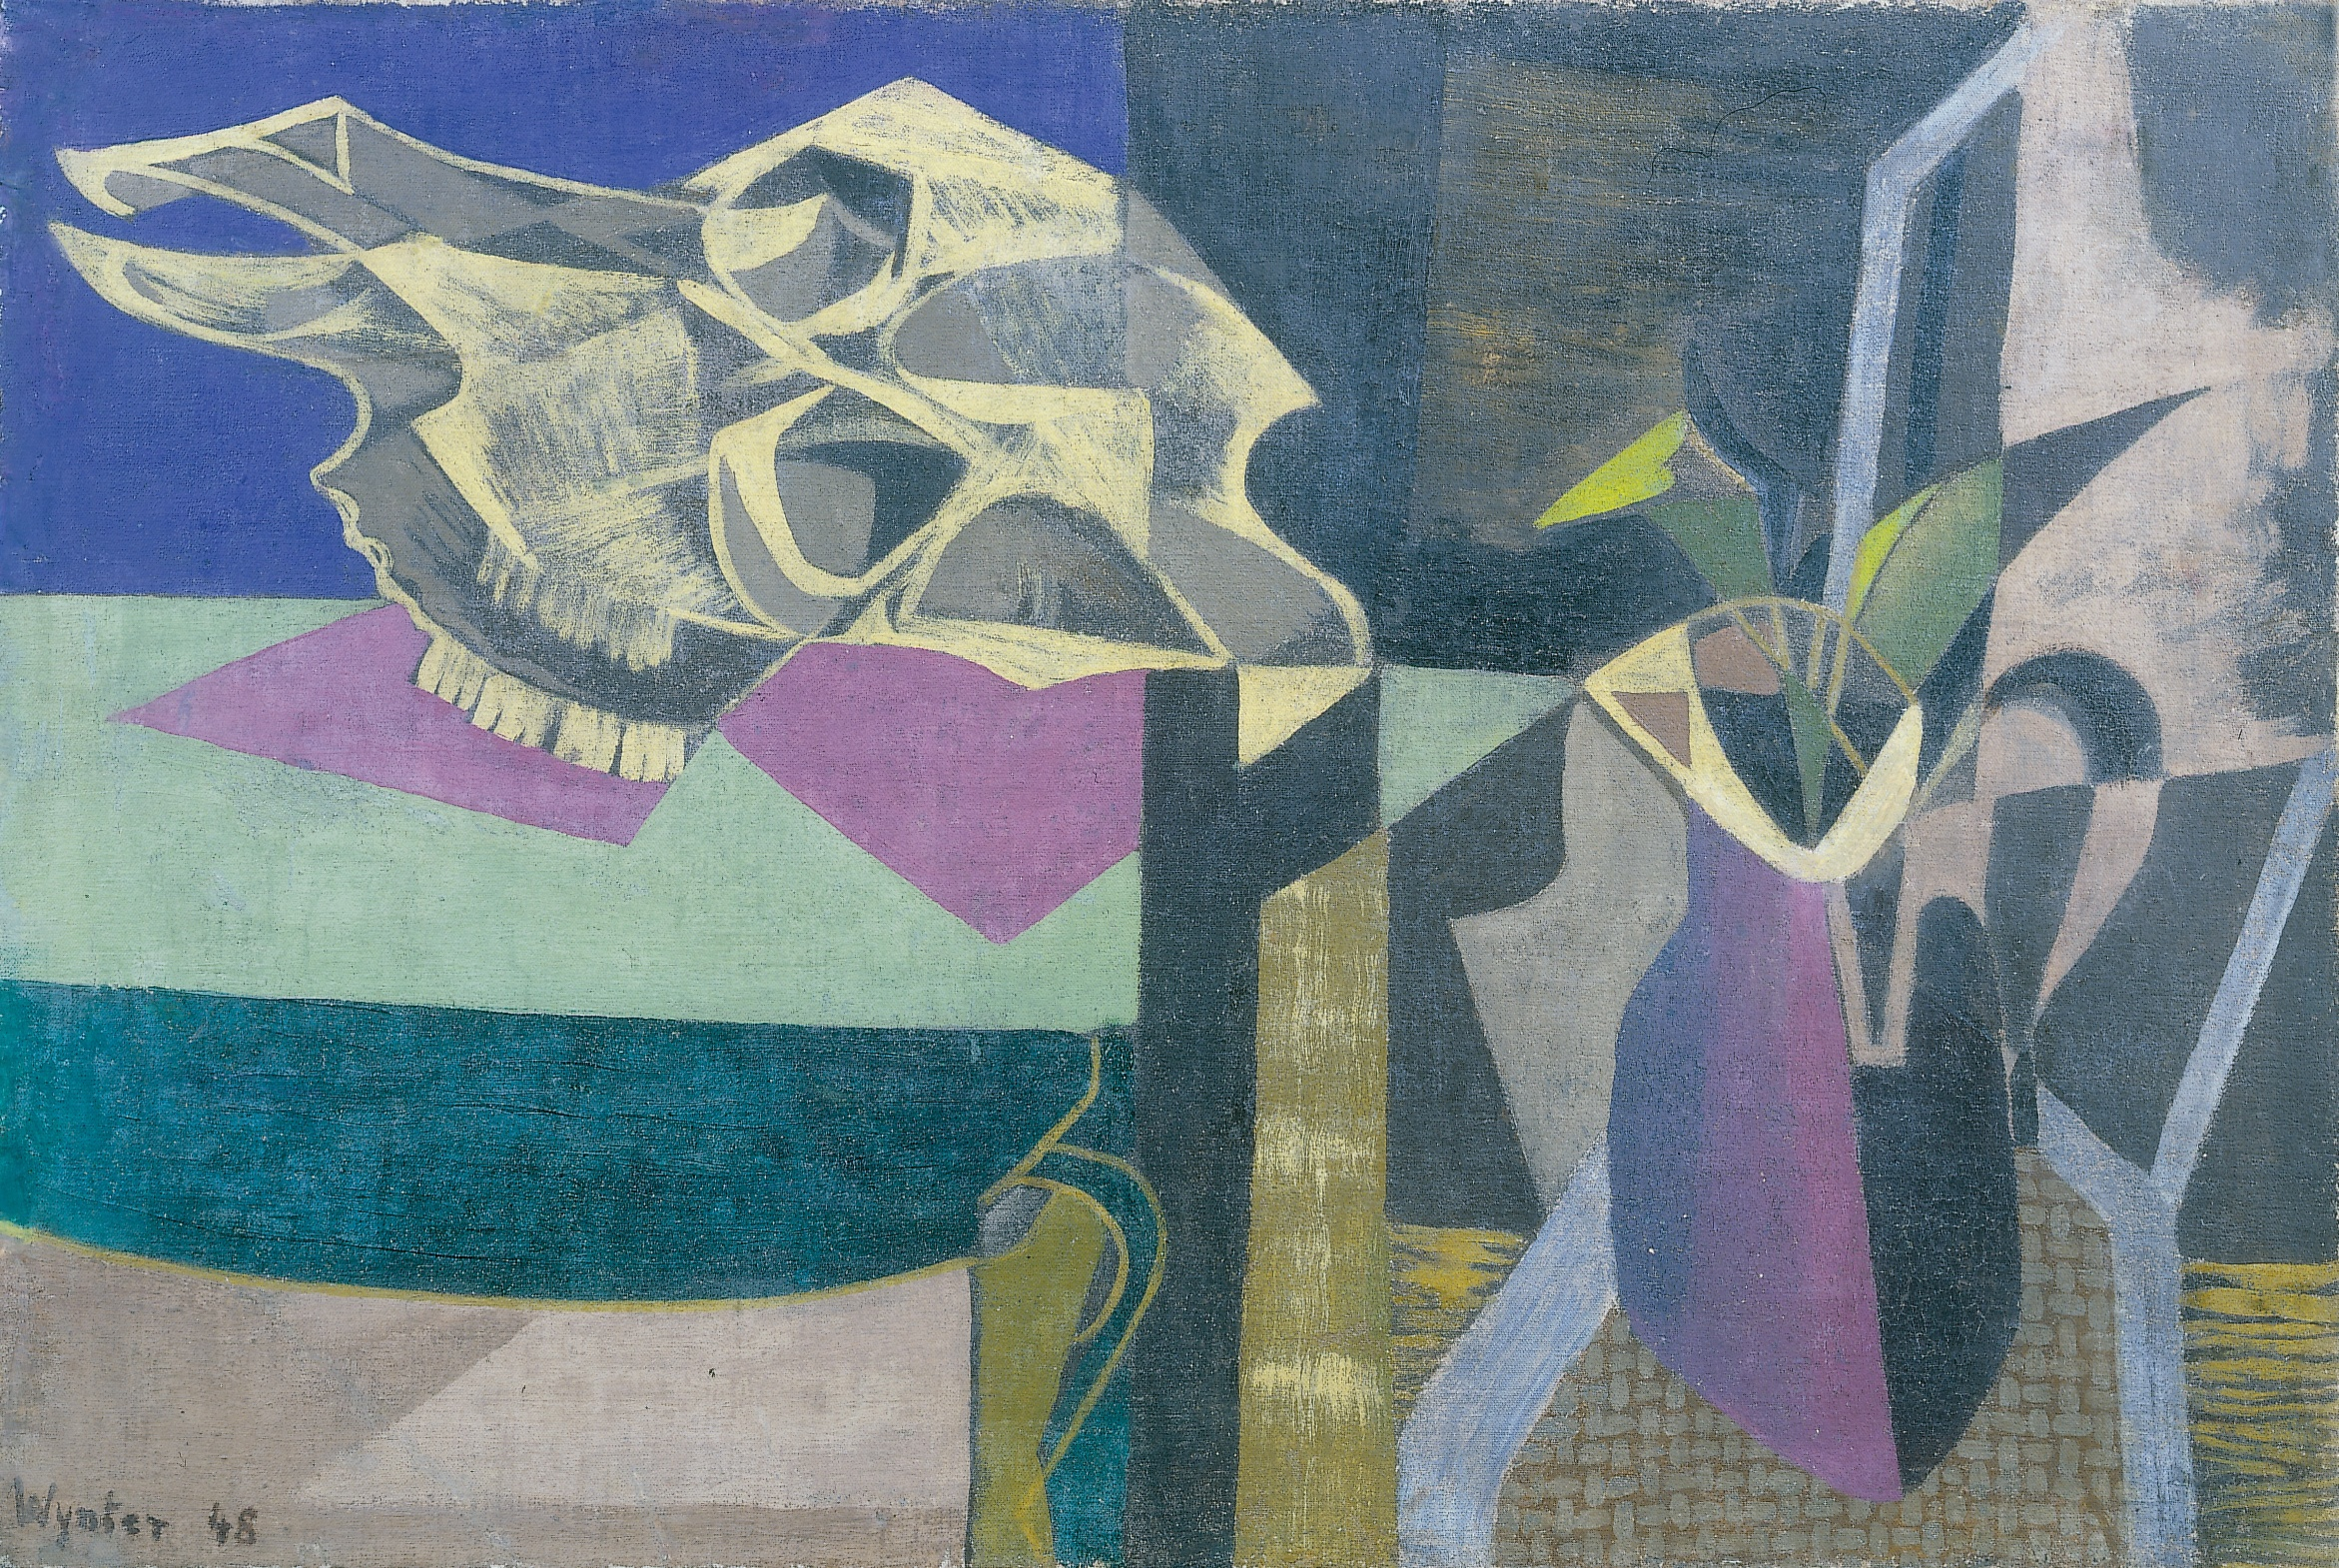 Bryan Wynter  Still Life with Ox Skull, 1948  signed & dated lower left  oil on canvas  19.75 x 29.75 in/ 51 x 75.5 cm